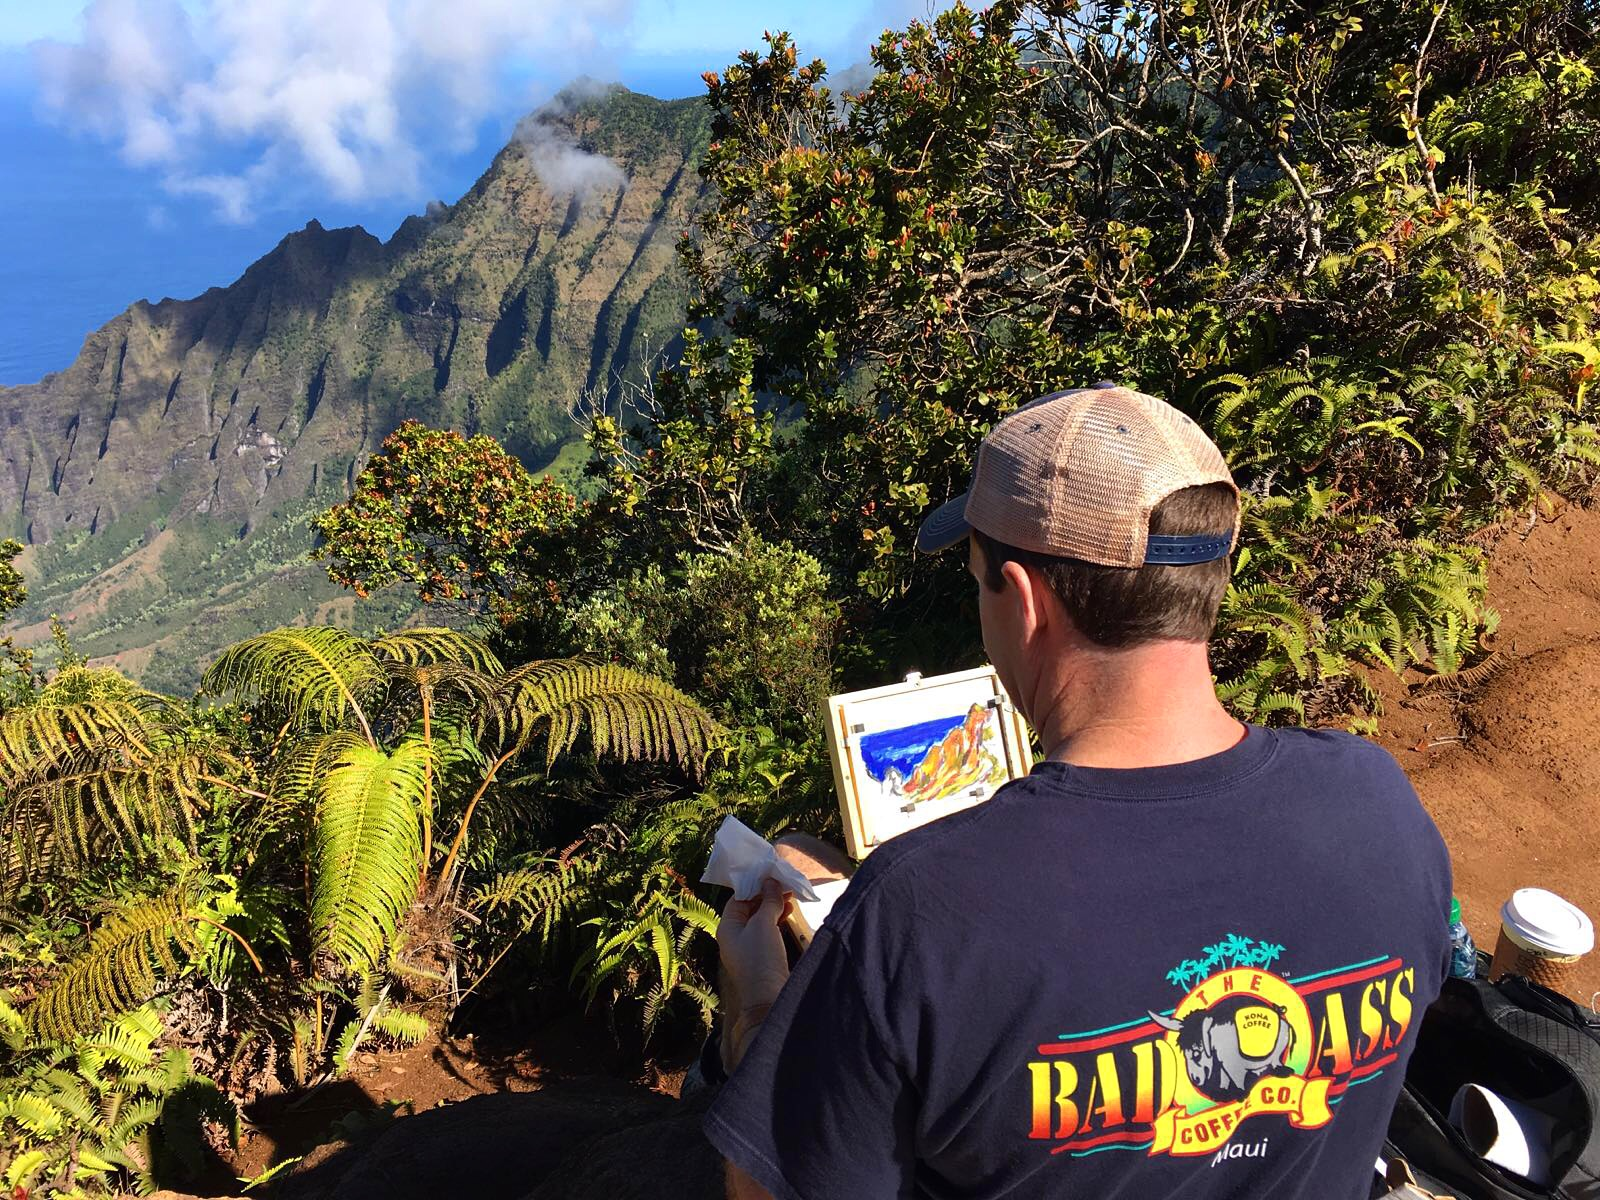 Plein air painting at the Pu'u O Kila lookout on the island of Kauai. This is Eric's happy spot.